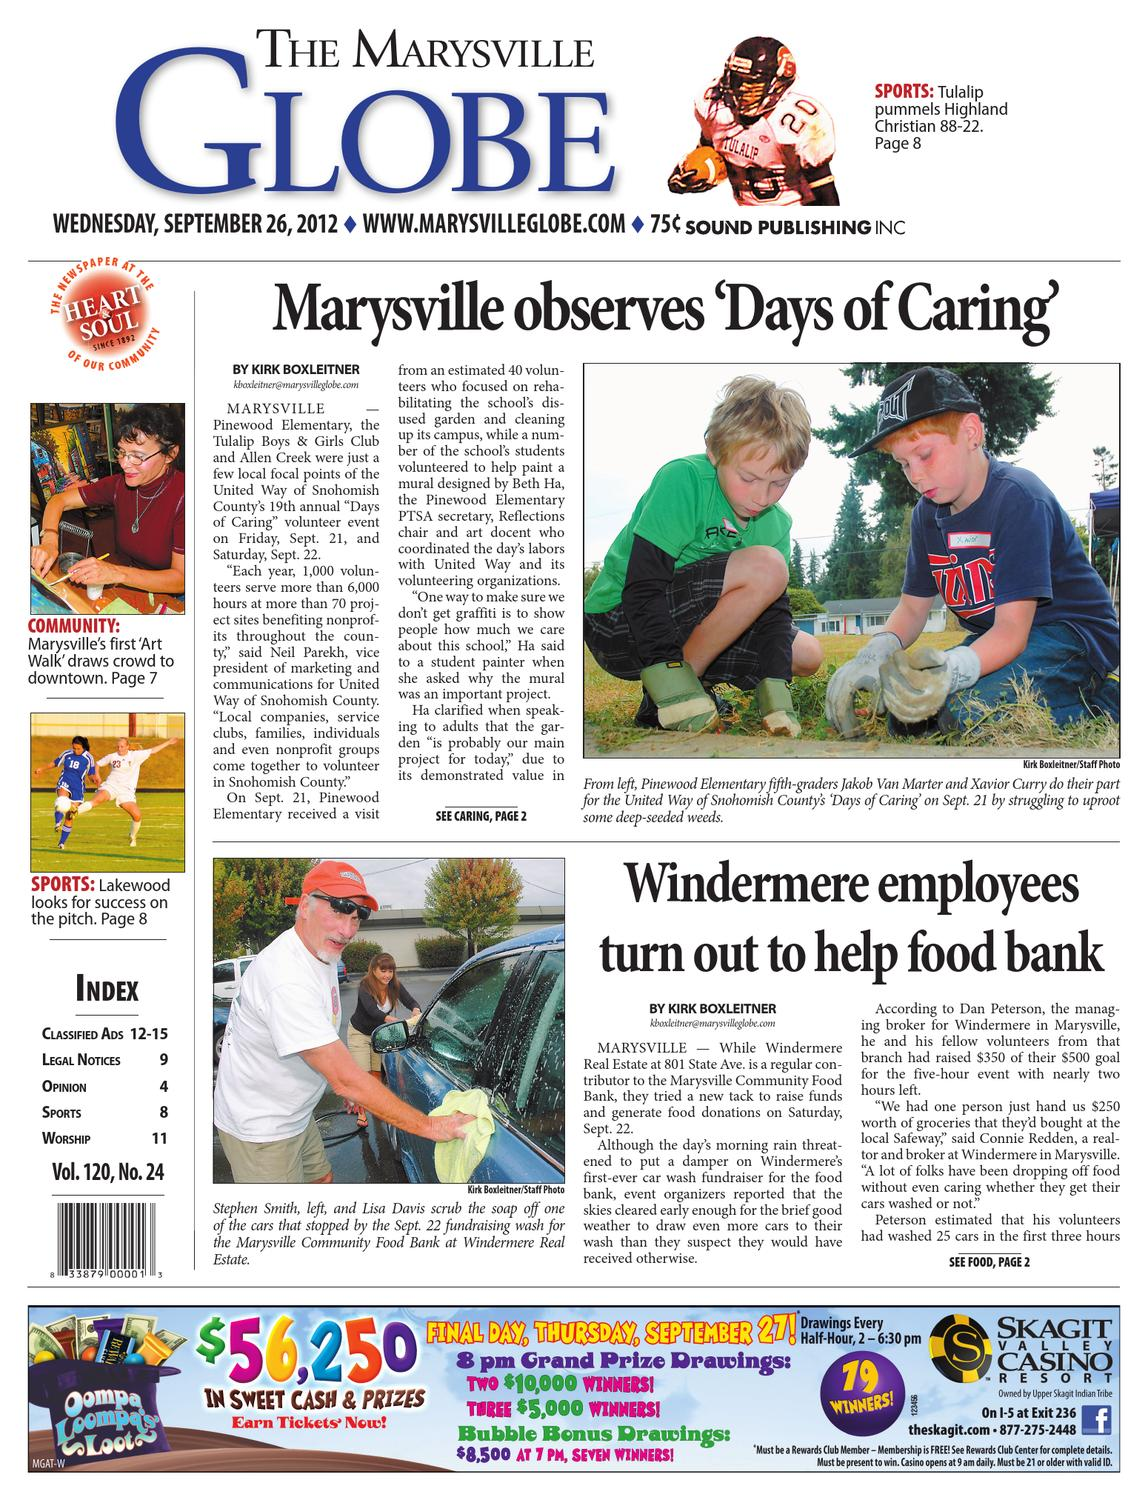 Marysville Globe, September 26, 2012 by Sound Publishing - issuu